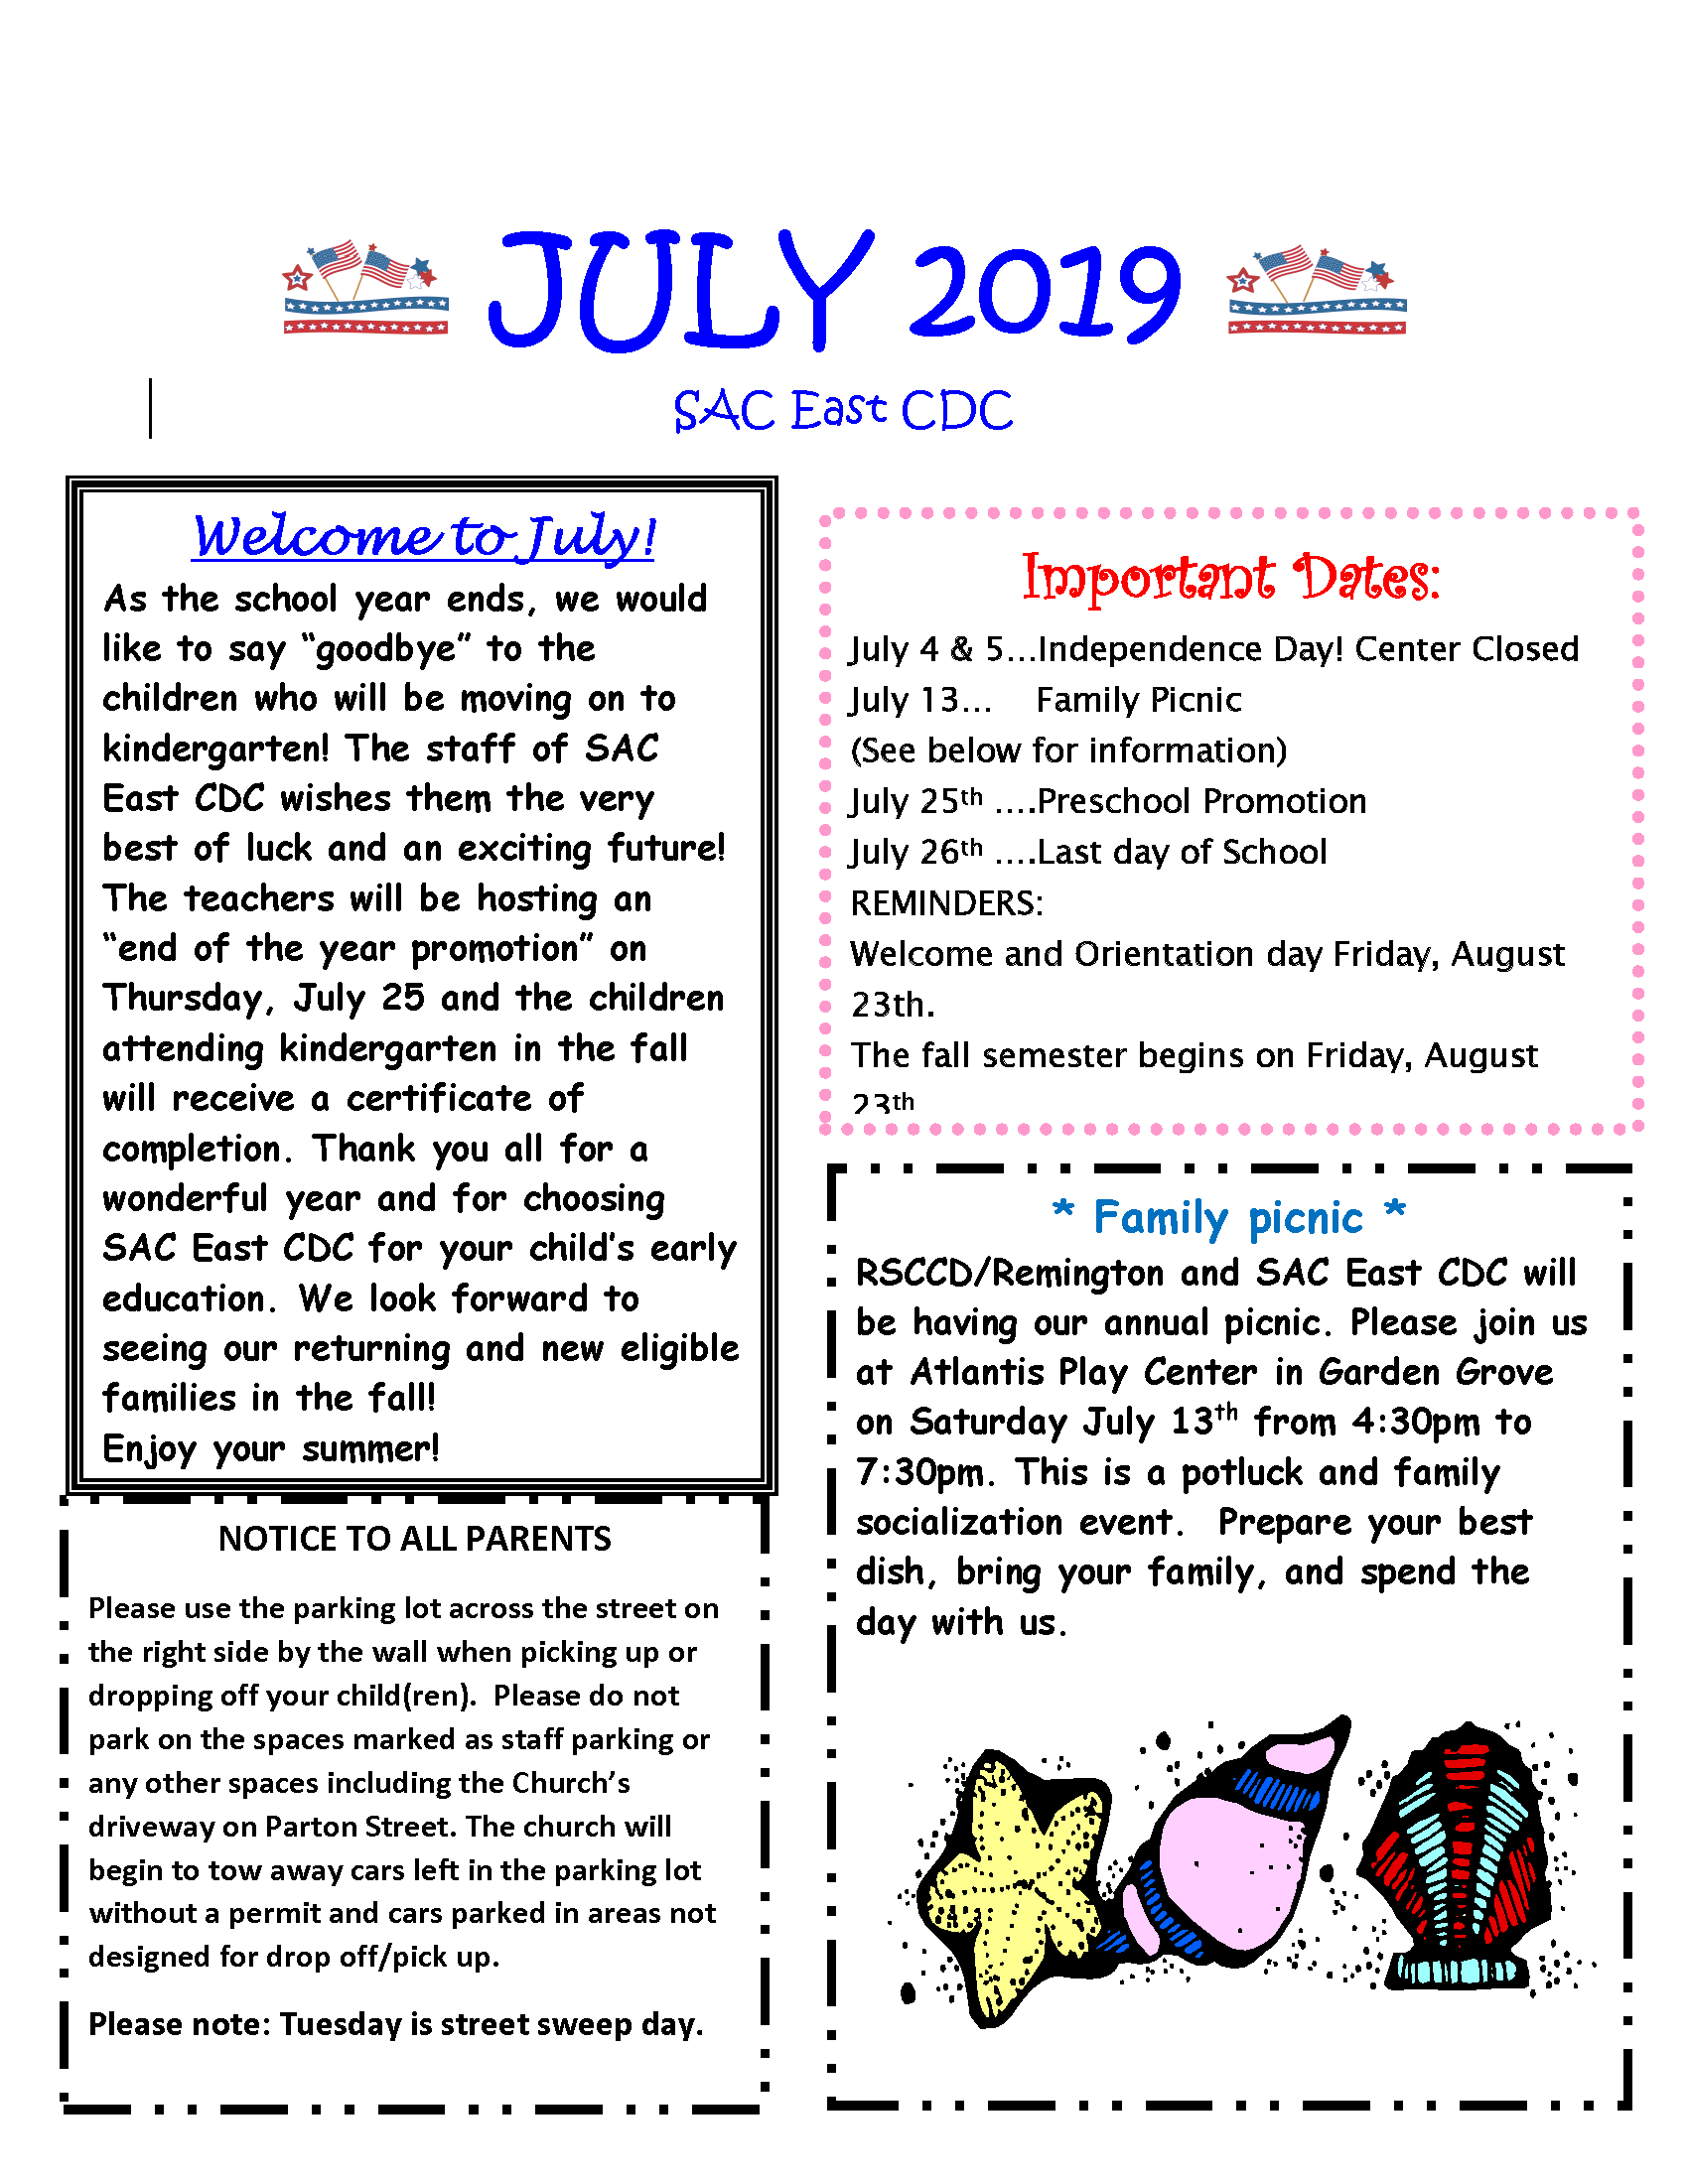 SAC-EAST April 2019 English updated.png